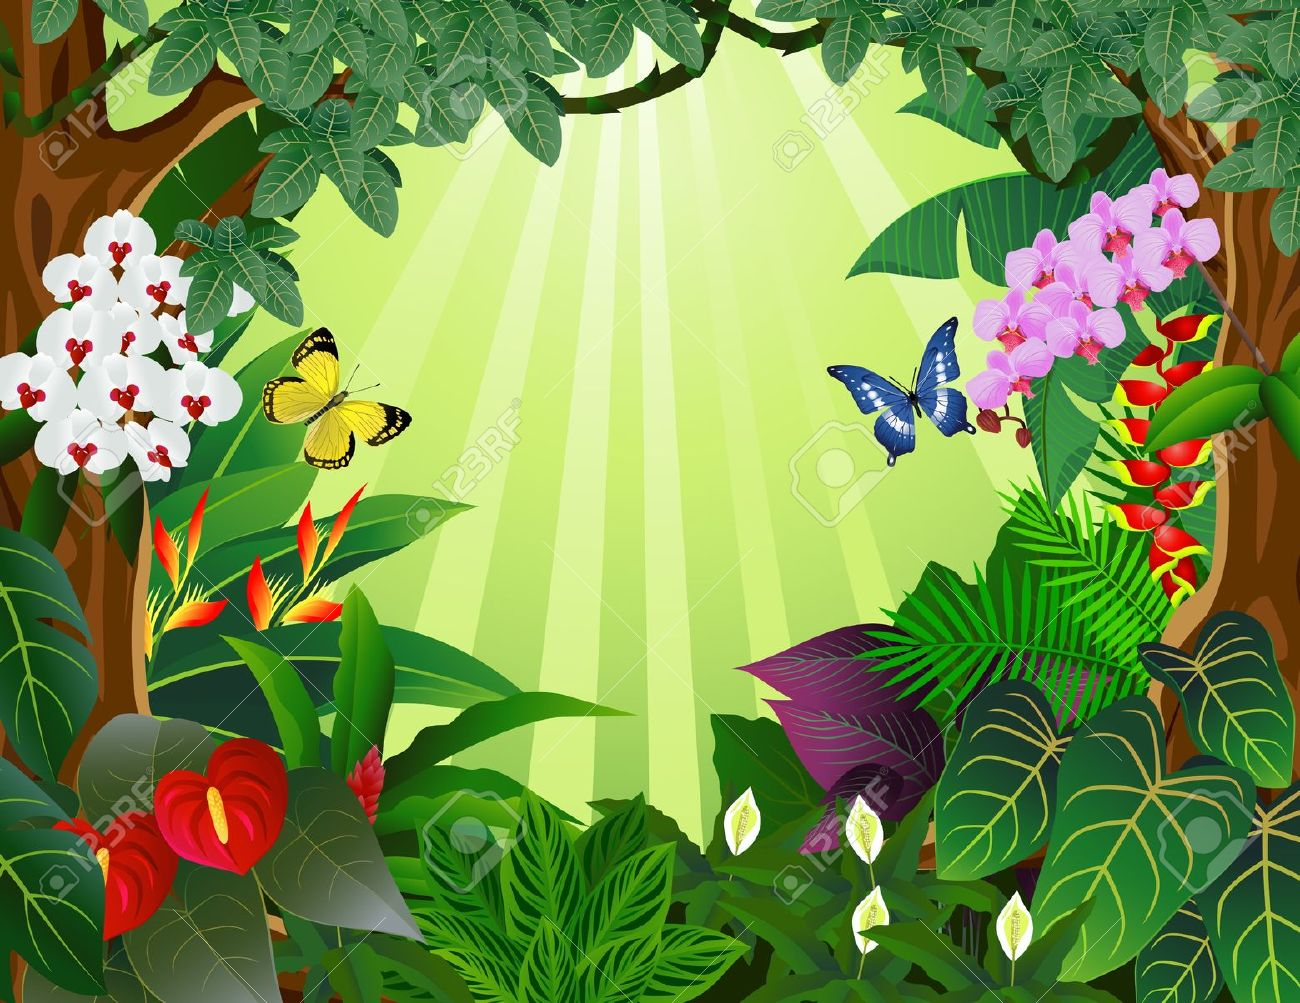 Rainforest clipart 8 » Clipart Station.